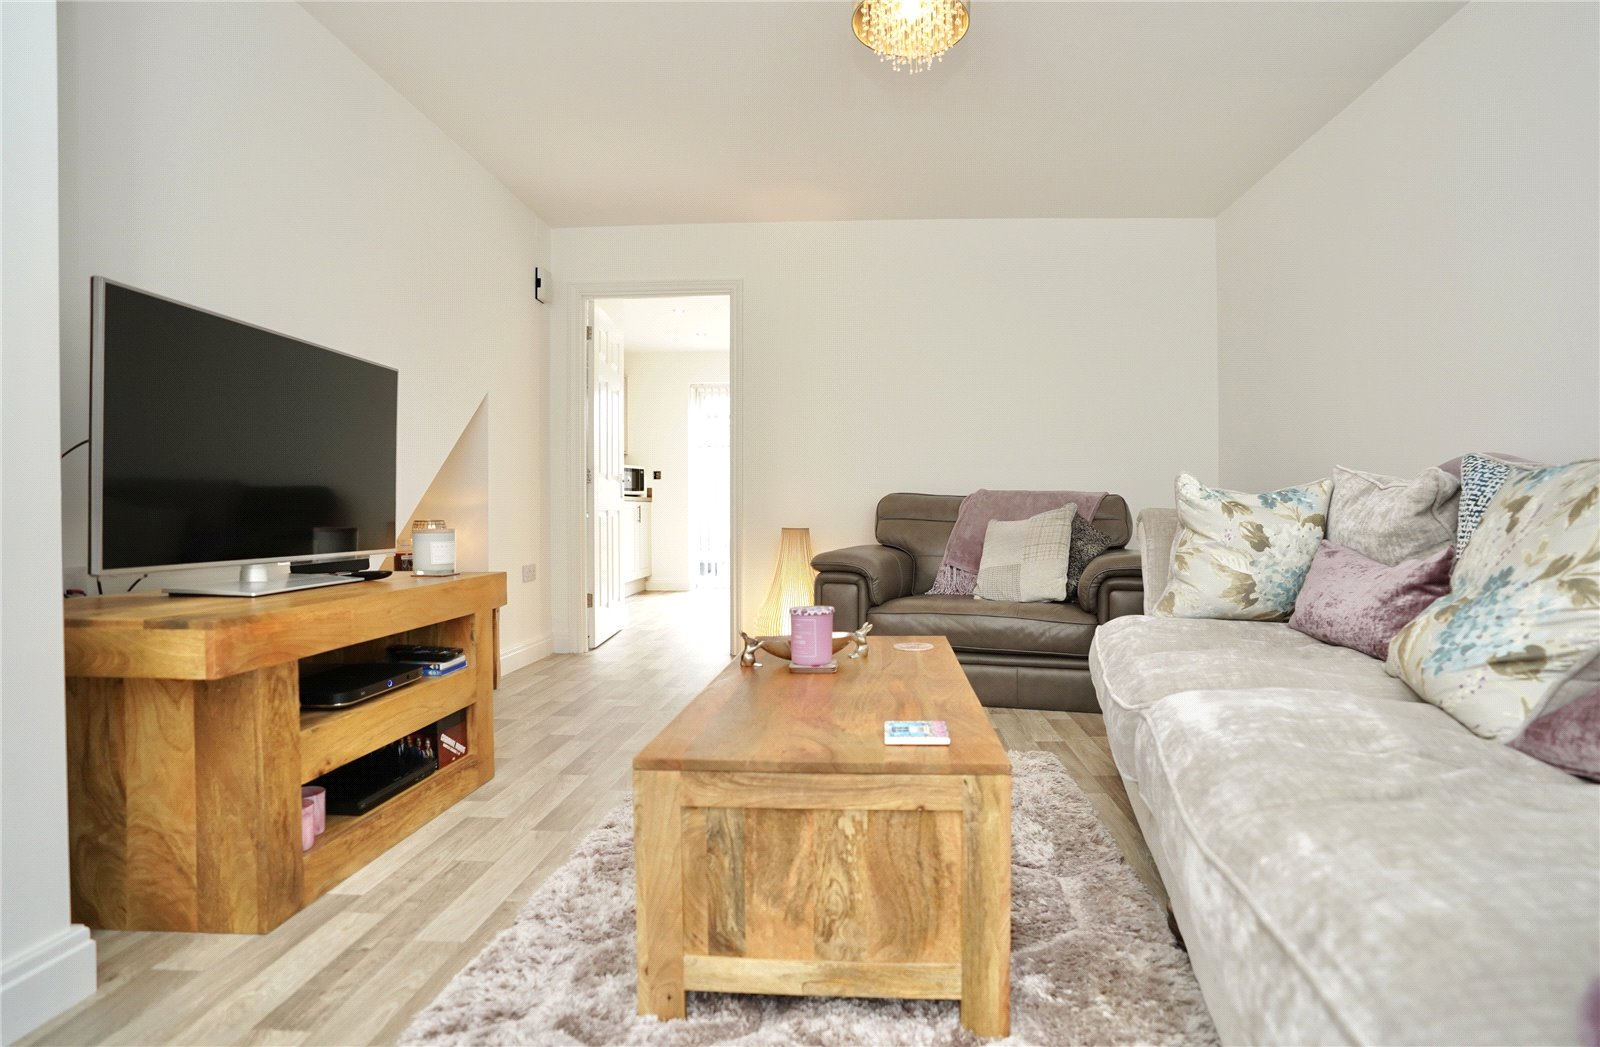 3 bed house for sale in Sawtry, PE28 5ZJ  - Property Image 5